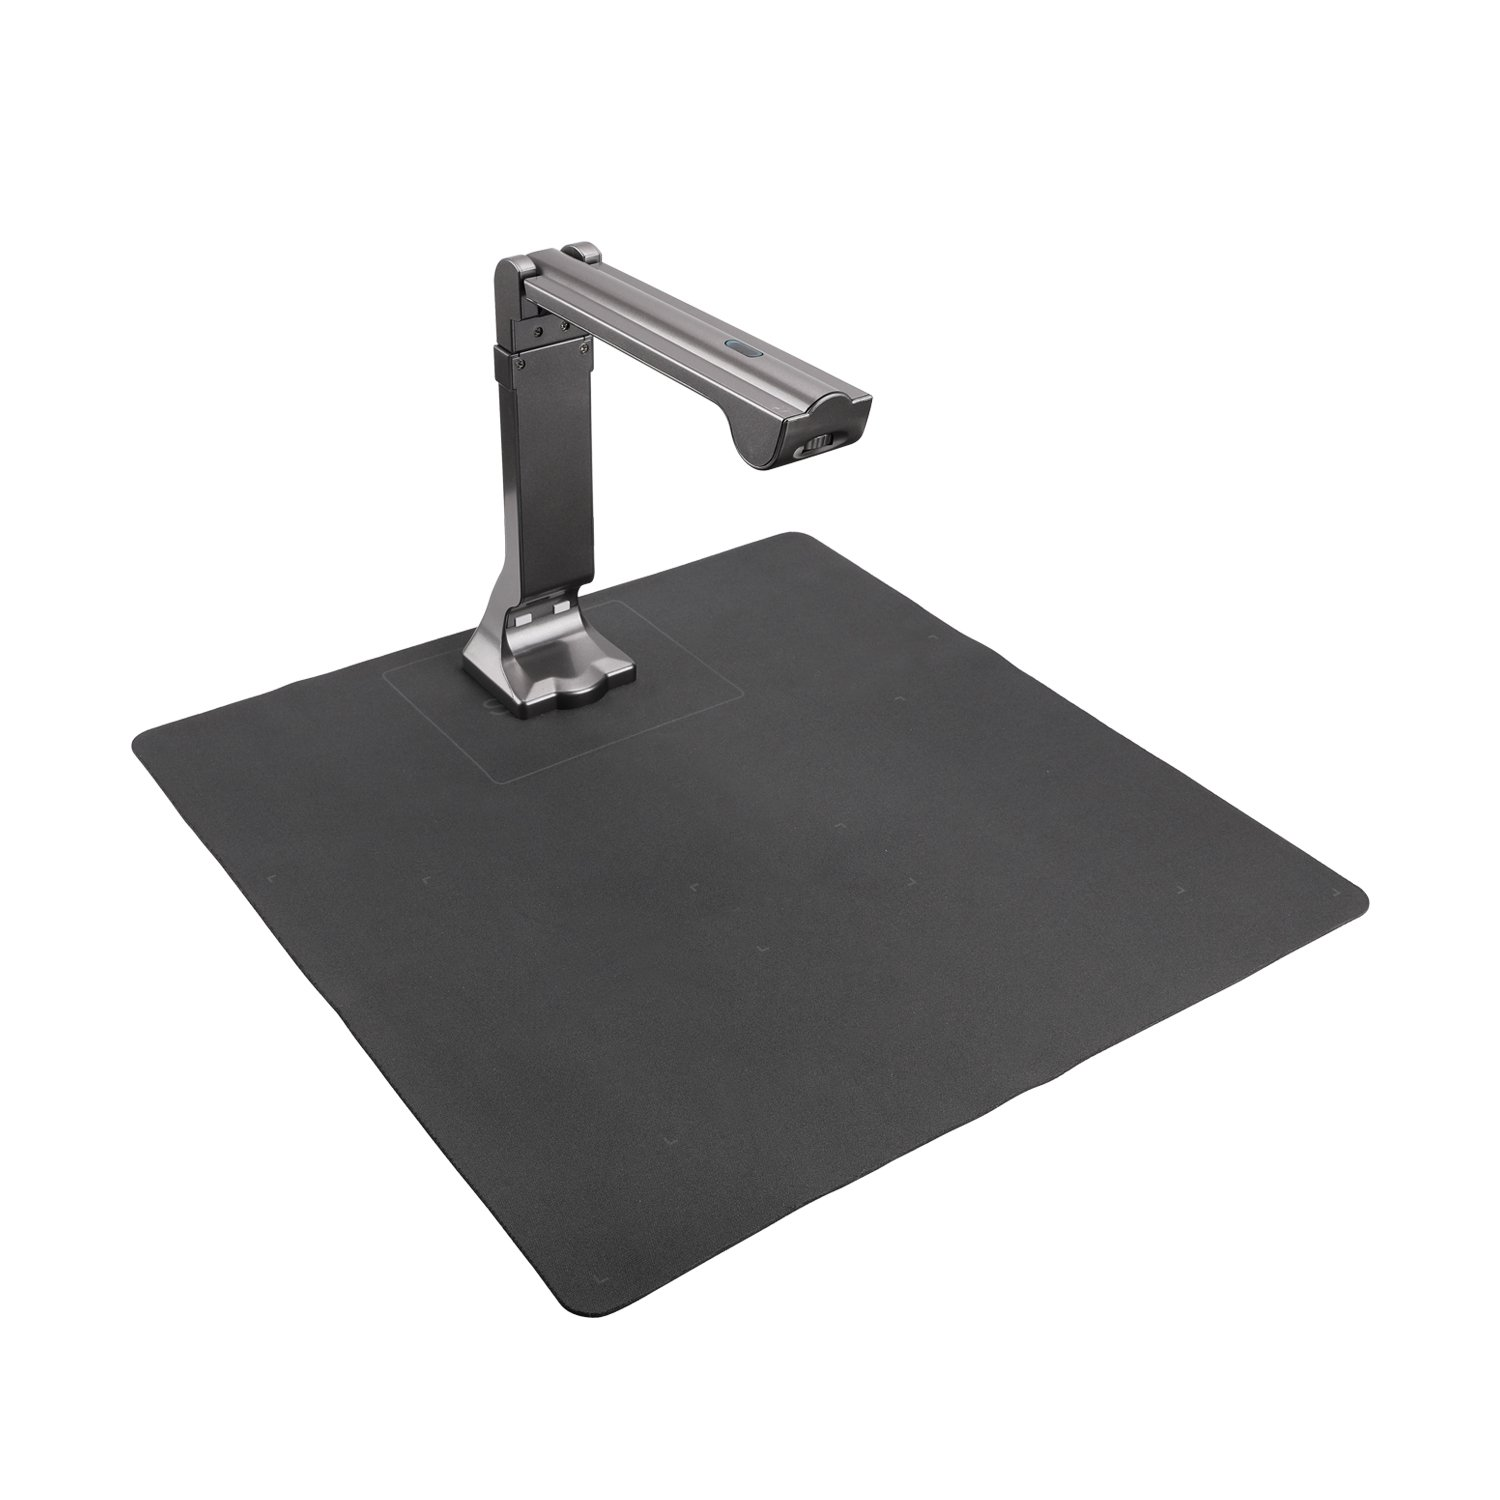 eloam Portable USB Document Camera Scanner S600 with,A3 Capture Size,5 MegaPixel CMOS, High-Definition Digital Visual Presenter